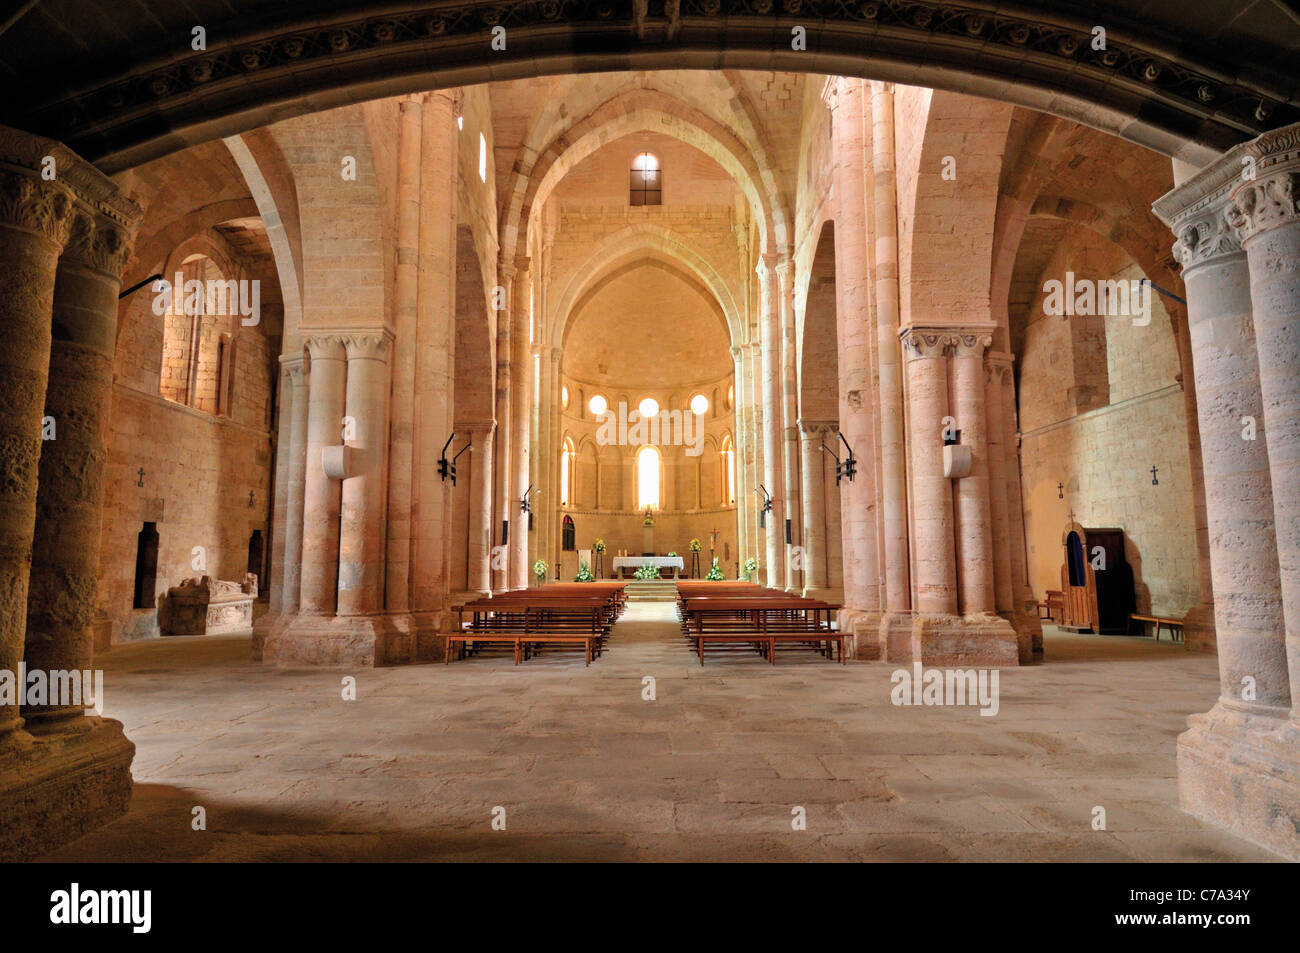 Spain, St. James Way: Interior of the monastery church Santa Maria la Real in Irache - Stock Image